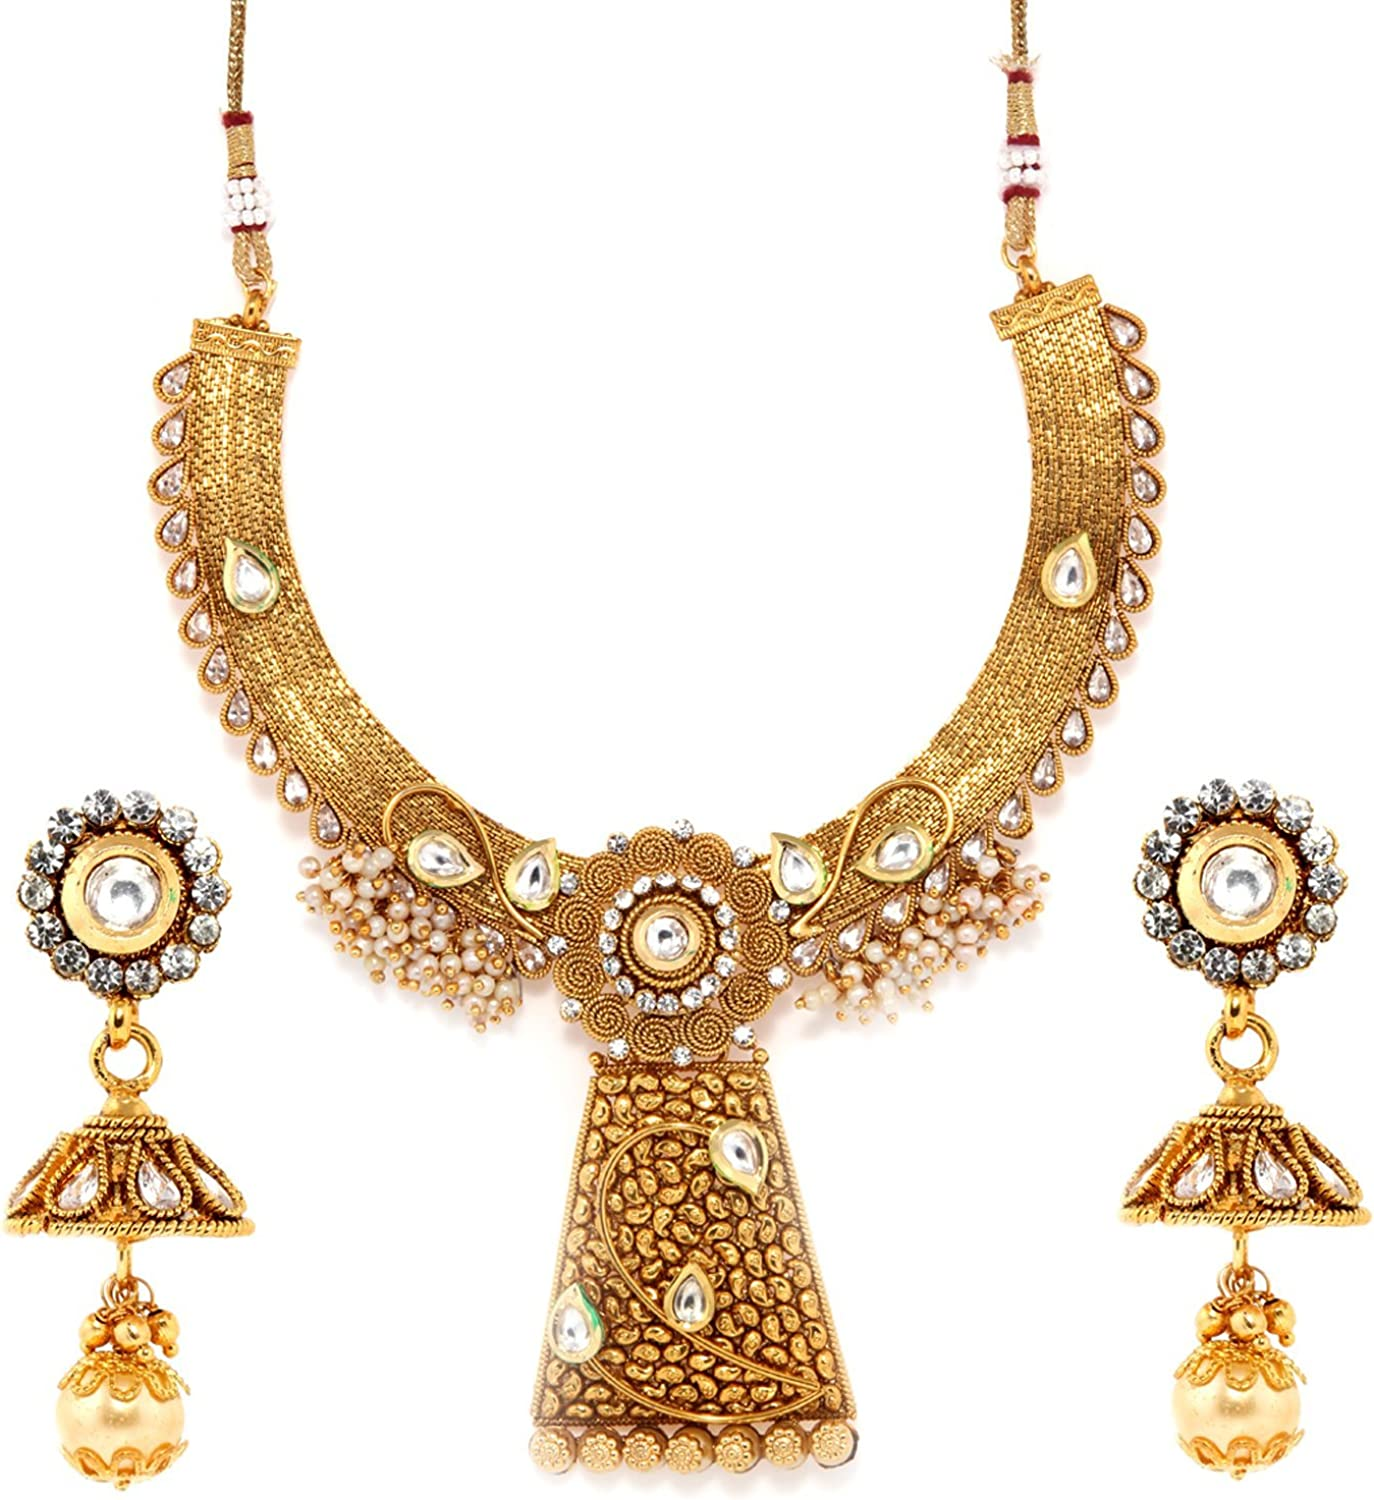 Bindhani Women's Bollywood Style Jewelry Designer Bridal Bridemaids Crafted Brides Gold Plated Kundan Faux Pearl Drop Necklace Earrings Tikka Set Indian Party Wear Fashion Jewellery Set for Wedding